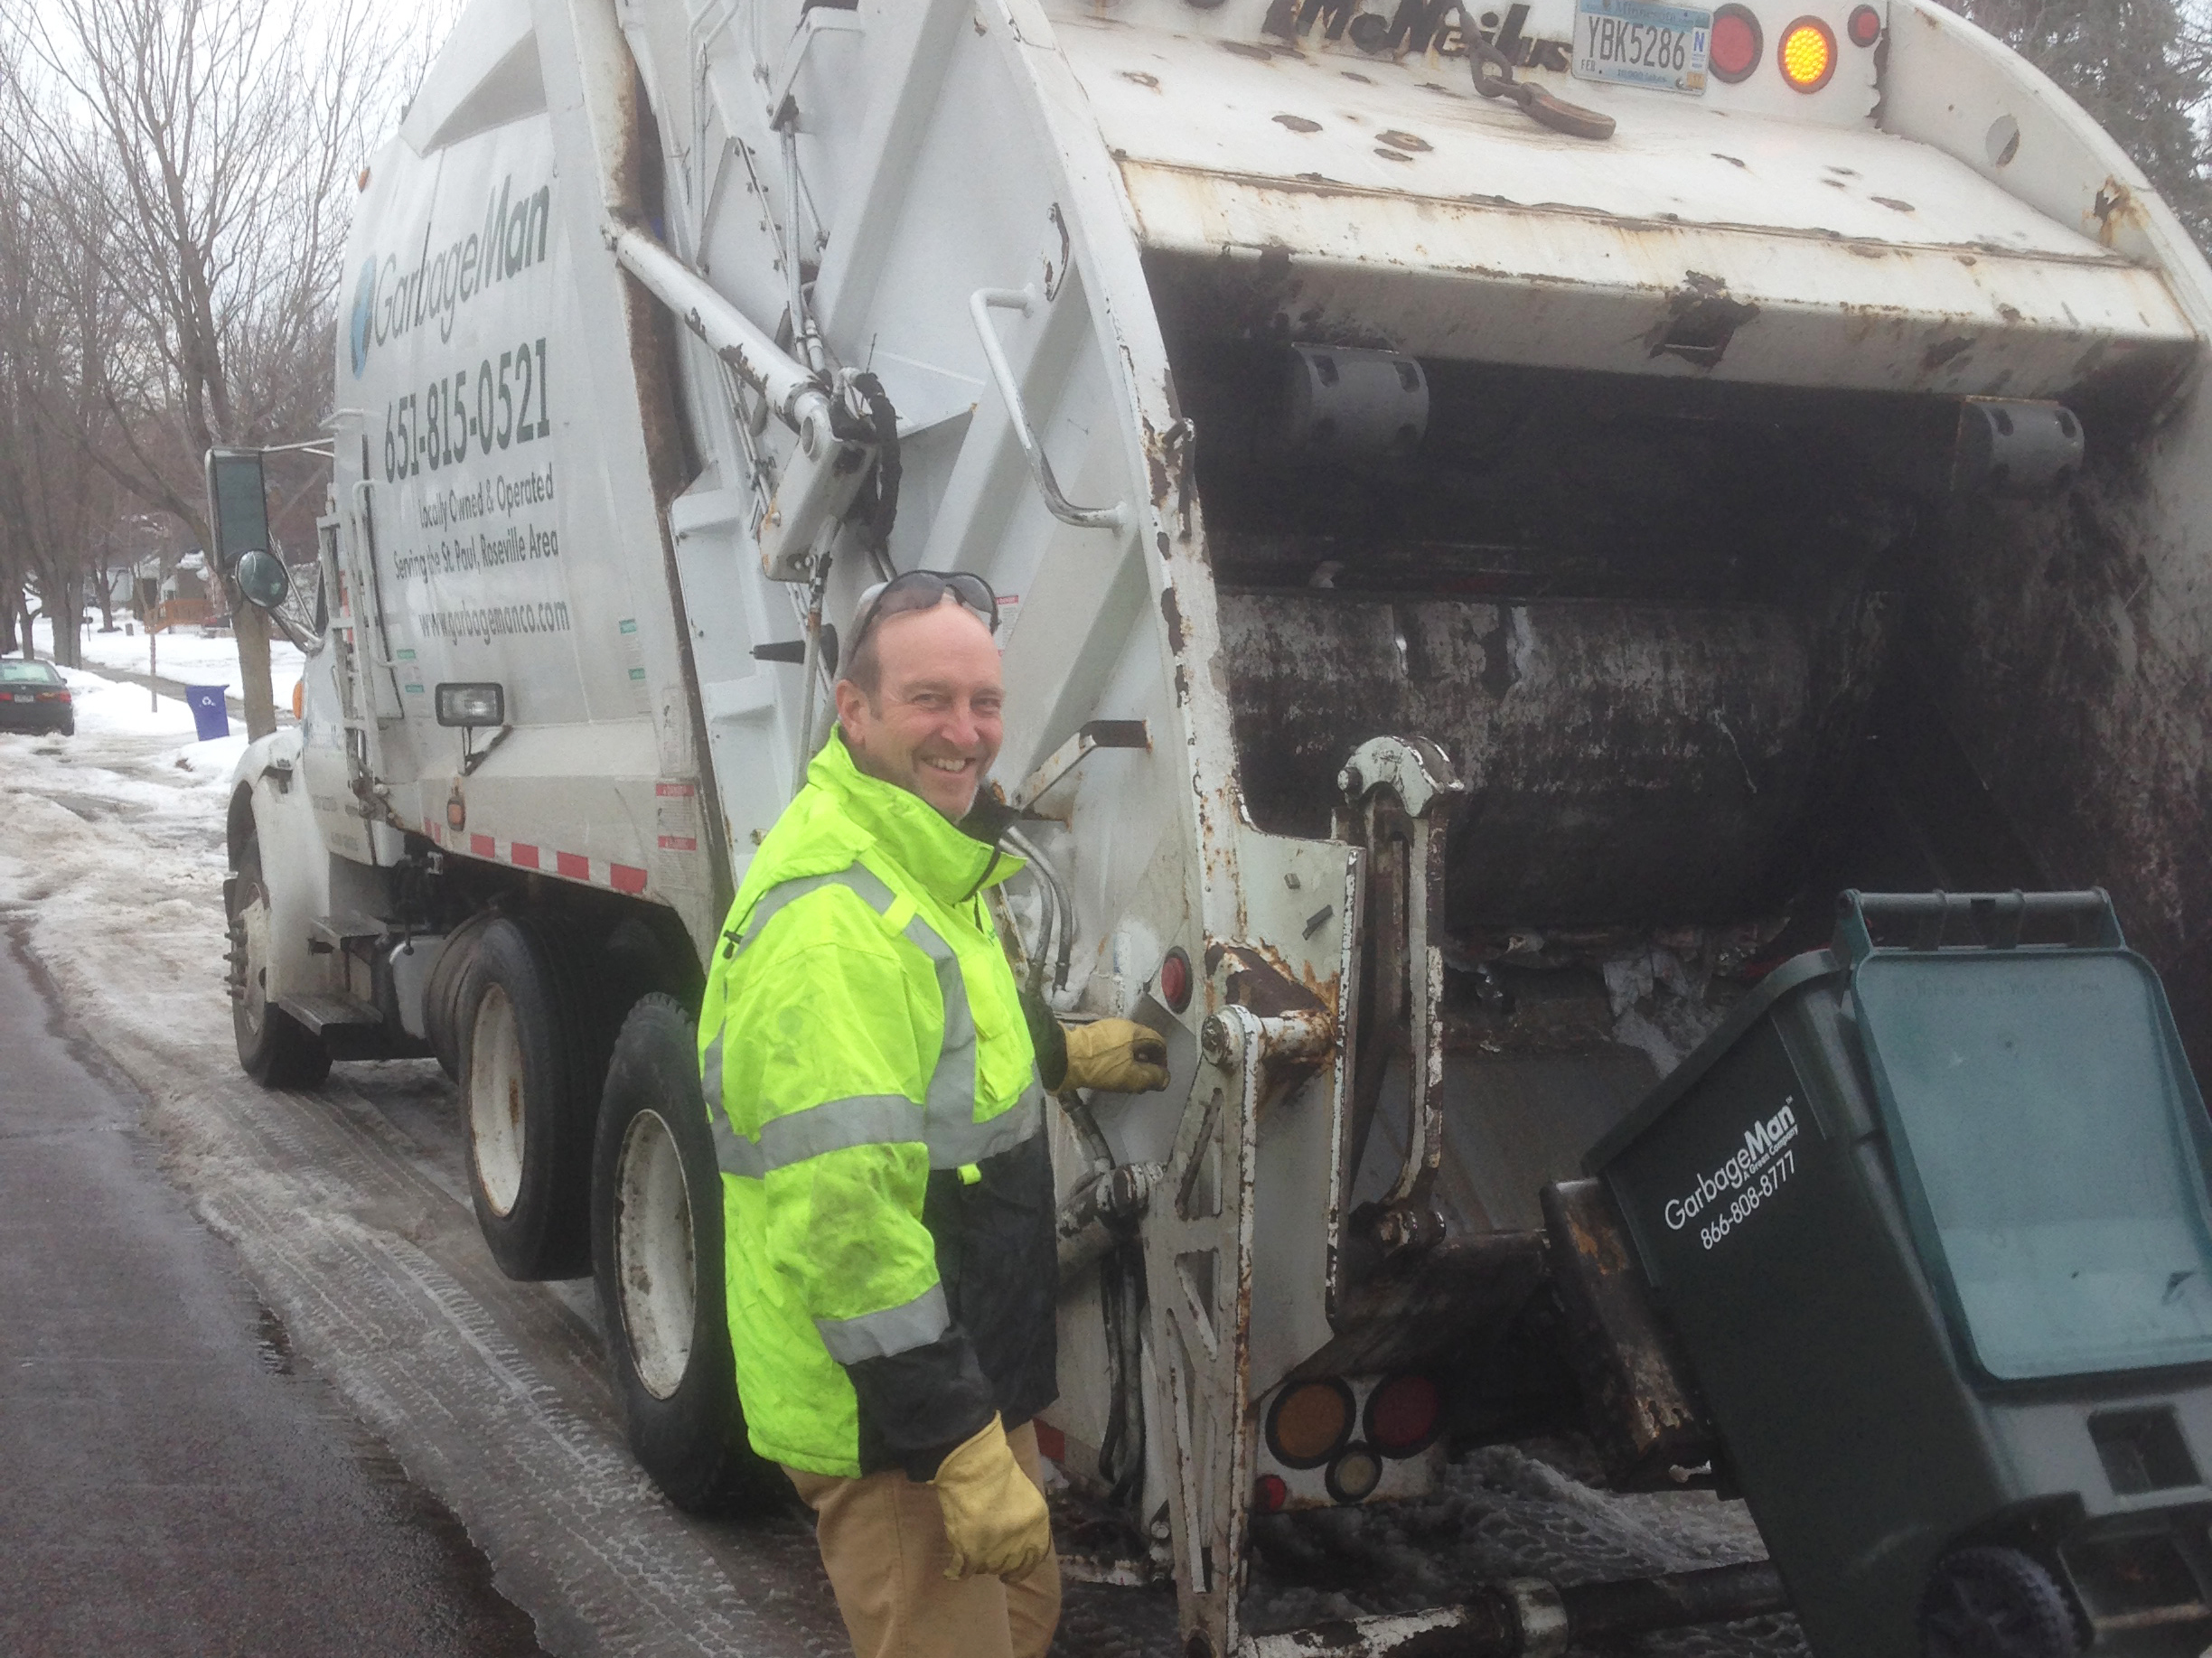 John Marboe is a Lutheran pastor in St. Paul, Minn., and an adjunct professor at the University of Minnesota, but says he keeps hauling trash because it's important. (Courtesy of John Marboe)